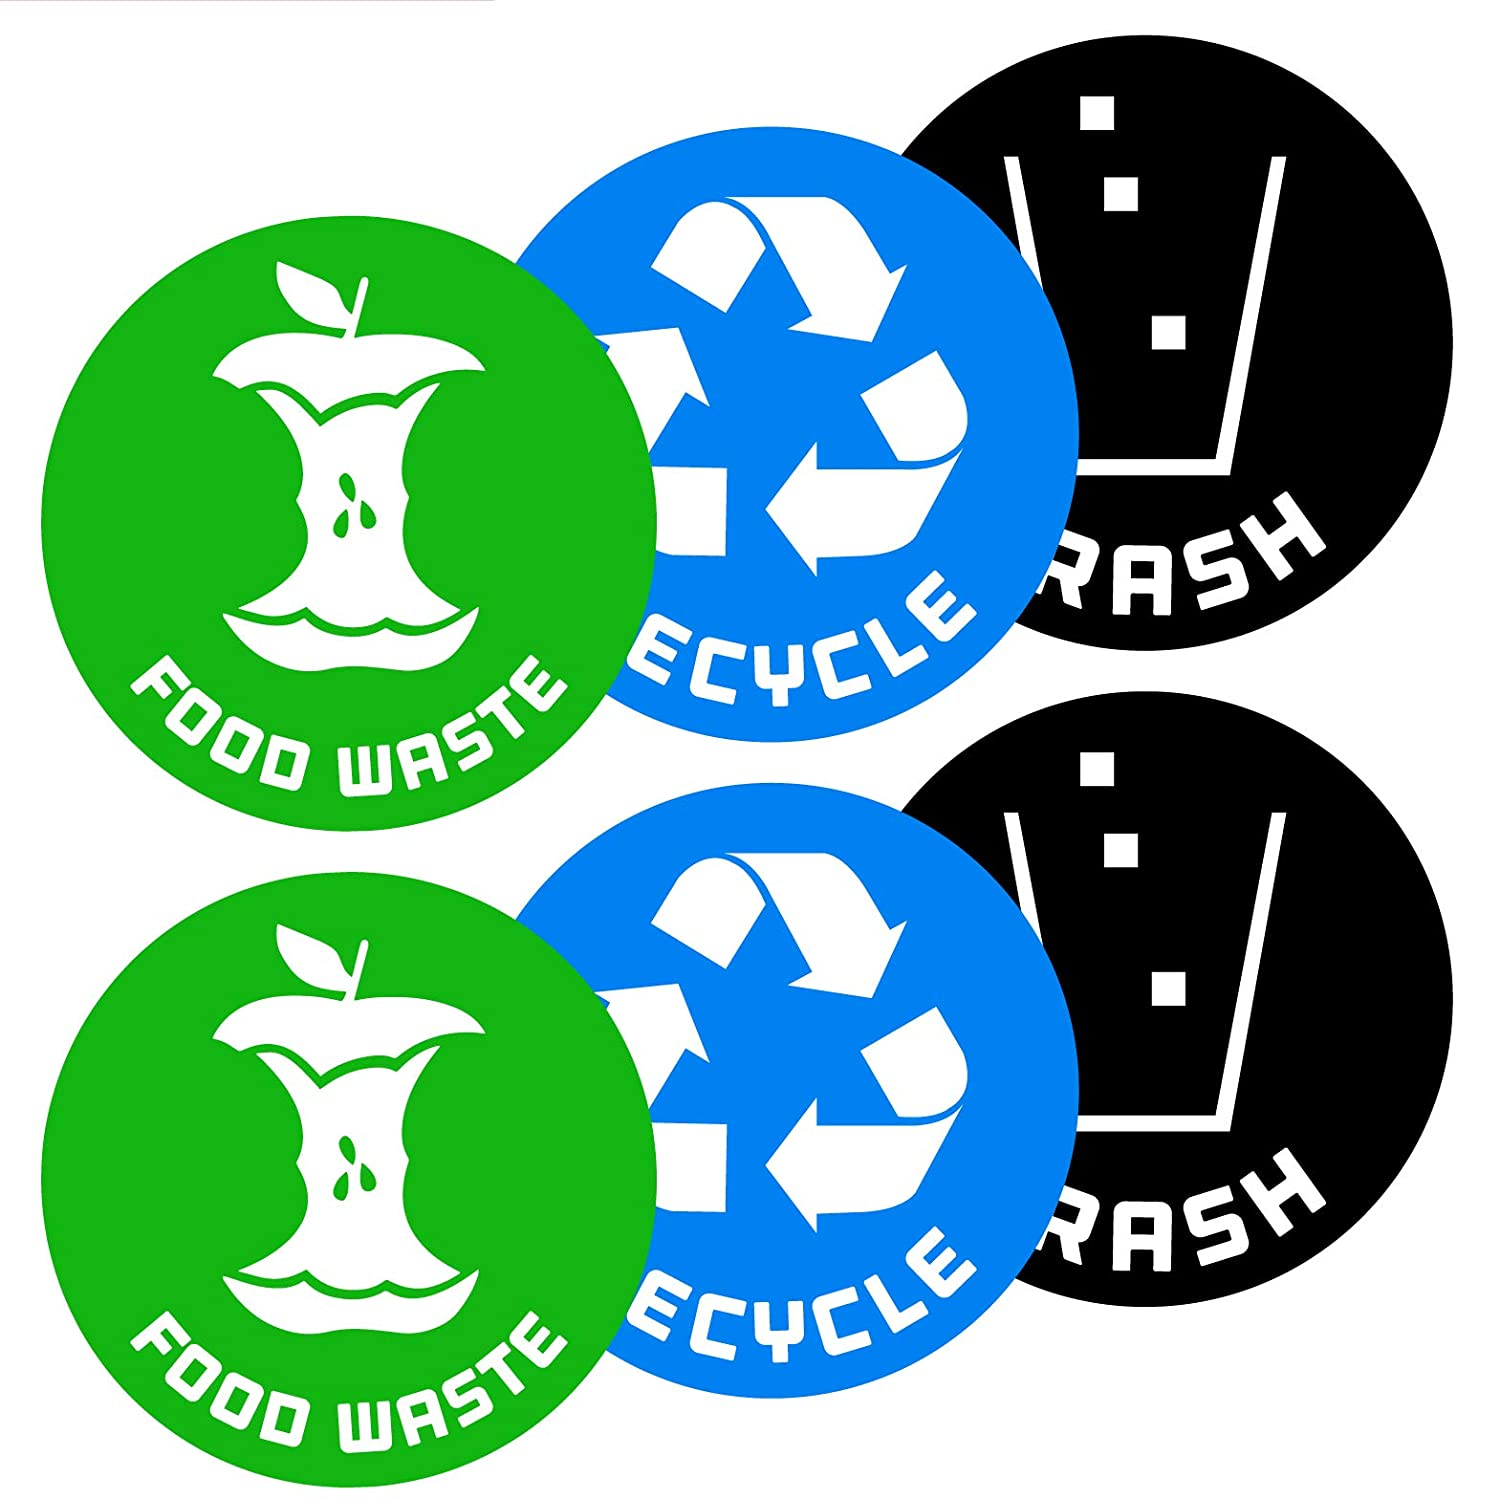 Recycletrash and compost food waste bin logo stickers 6 pack 4in x 4in organize trash for metal or plastic garbage cans containers and bins